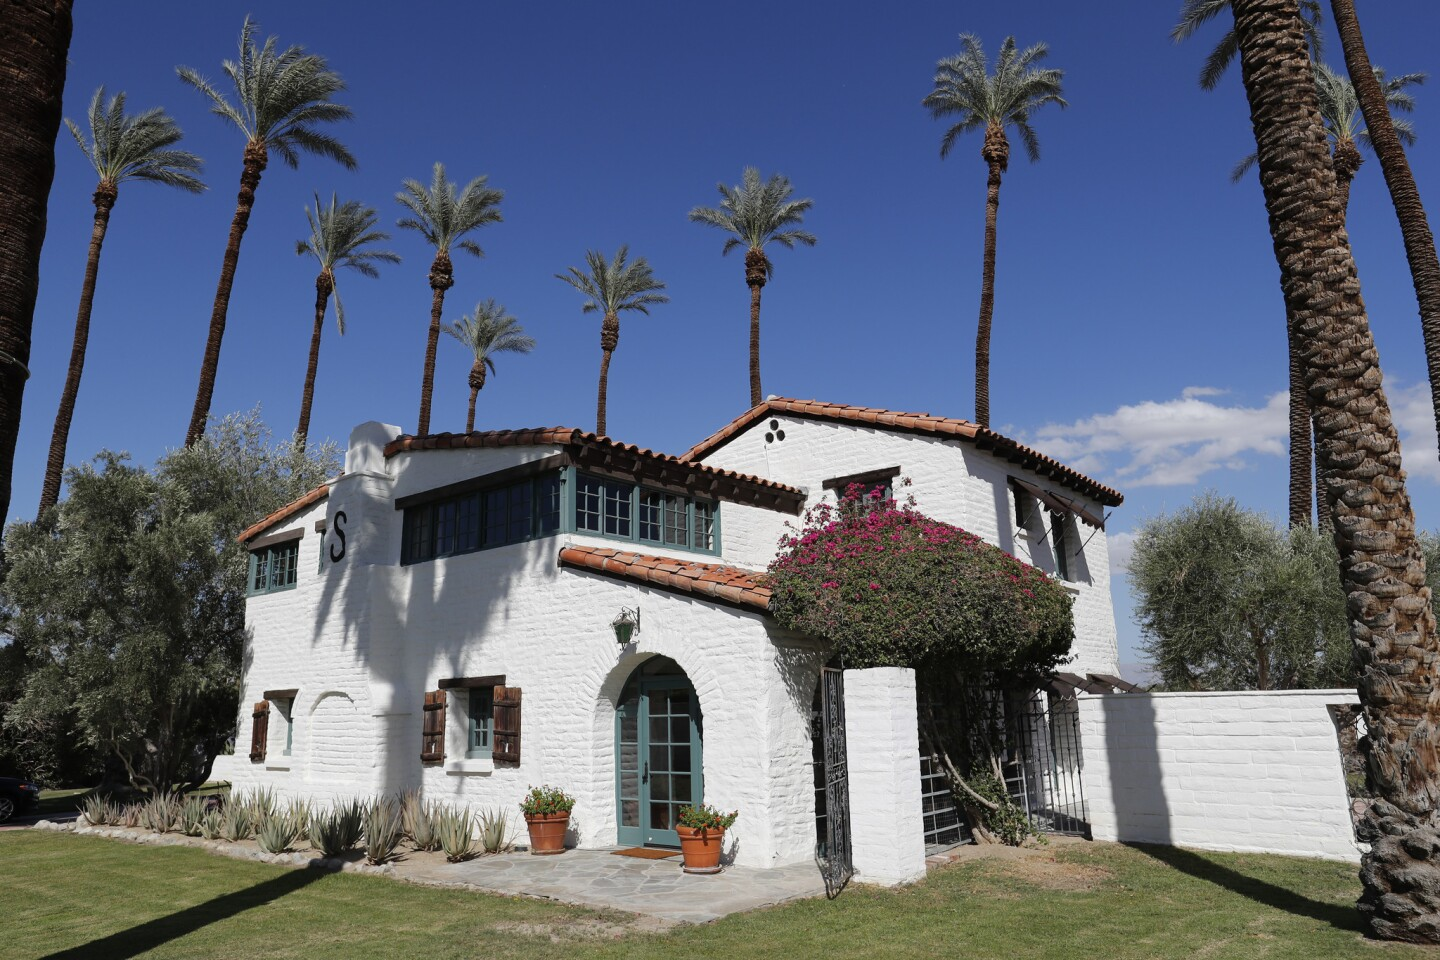 The historic 1922 Cavanagh Adobe in Indian Wells is one of the oldest adobe homes in the Coachella Valley. Situated on an acre of land and populated with huge date palms, the home will be open to the public during the Modernism Week Fall Preview on Oct. 19-22.